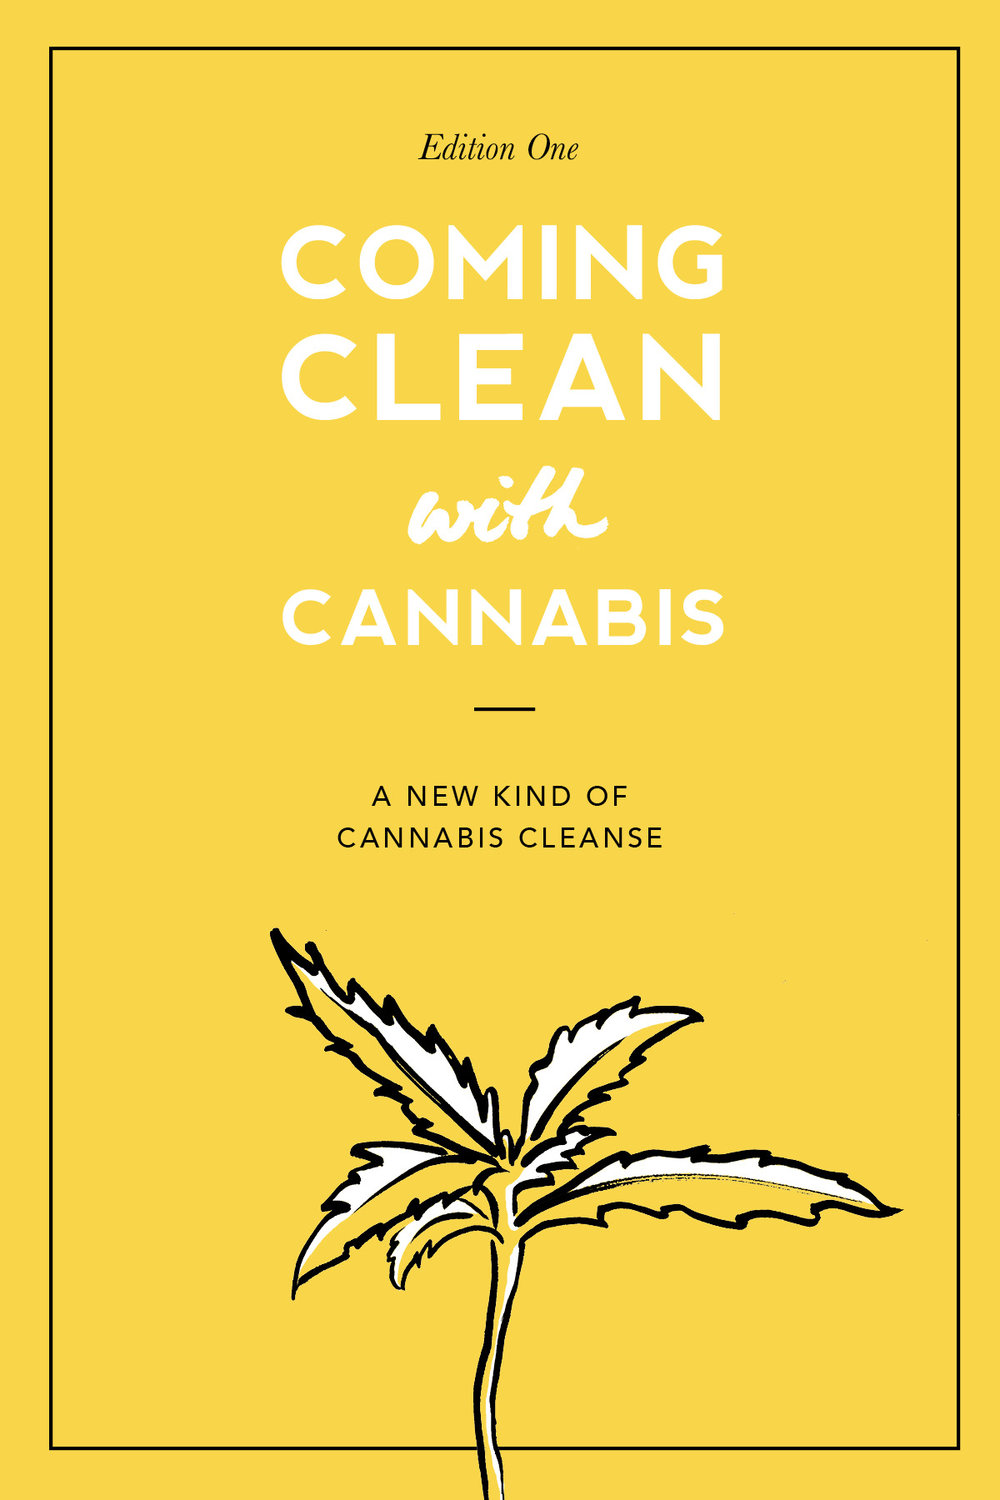 Cannabis Cleanse eBook  Download Coming Clean with Cannabis: A New Kind of Cannabis Cleanse